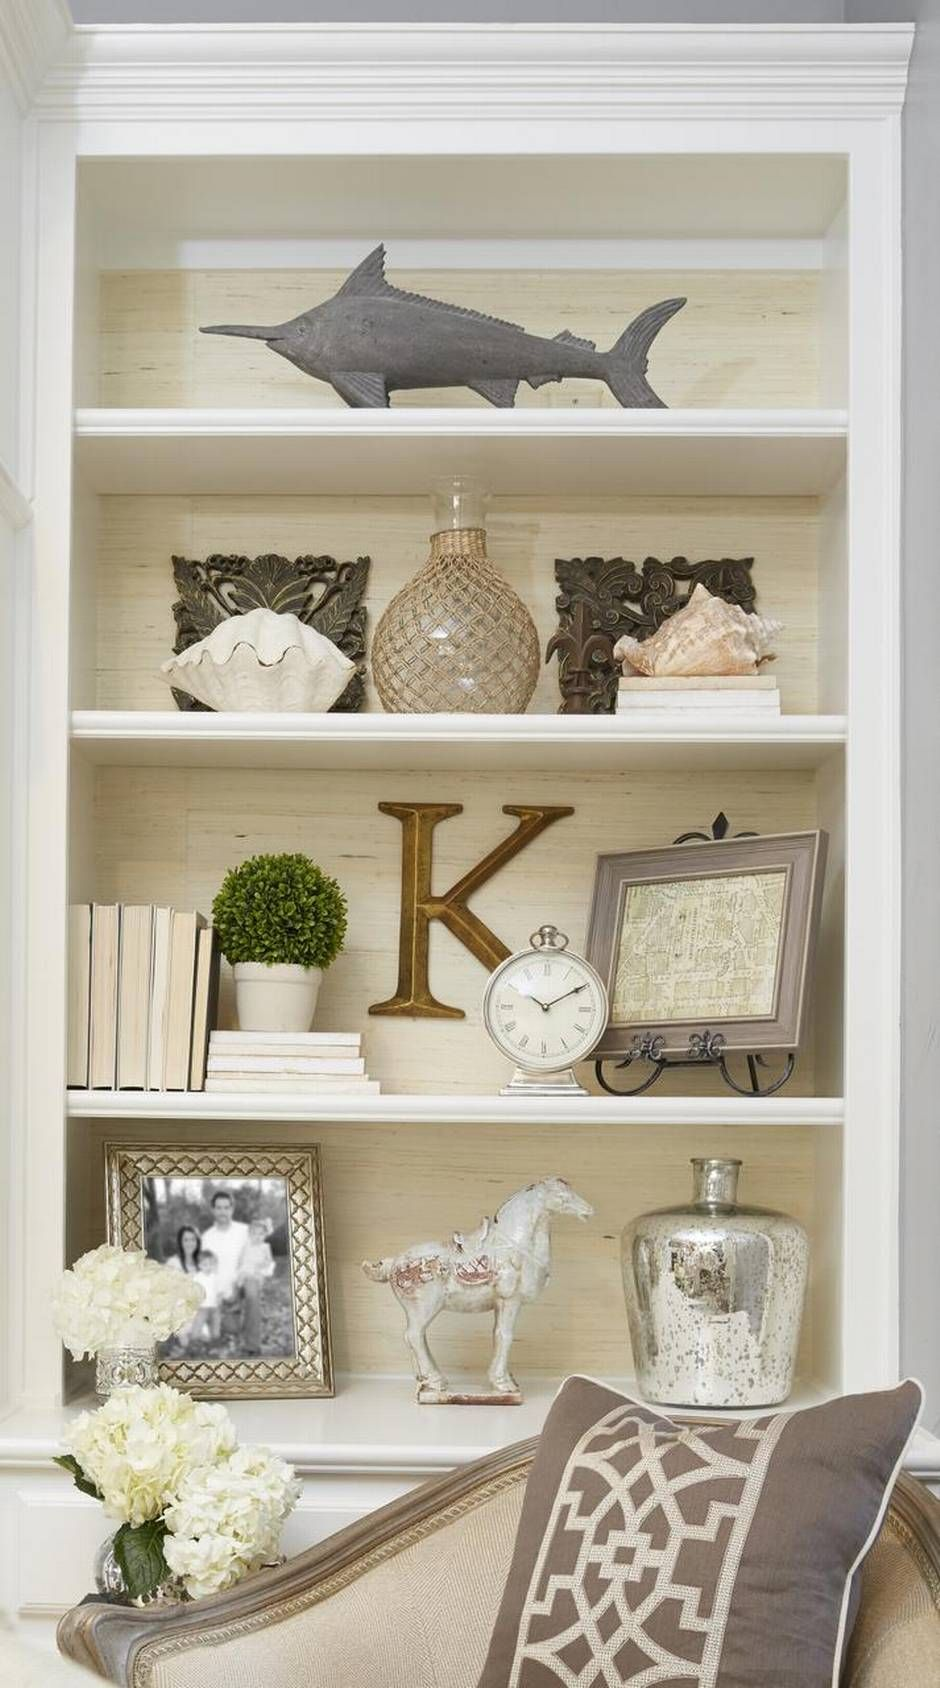 ideas room shelves wall gleanme in bookshelf decorating org living shelf built